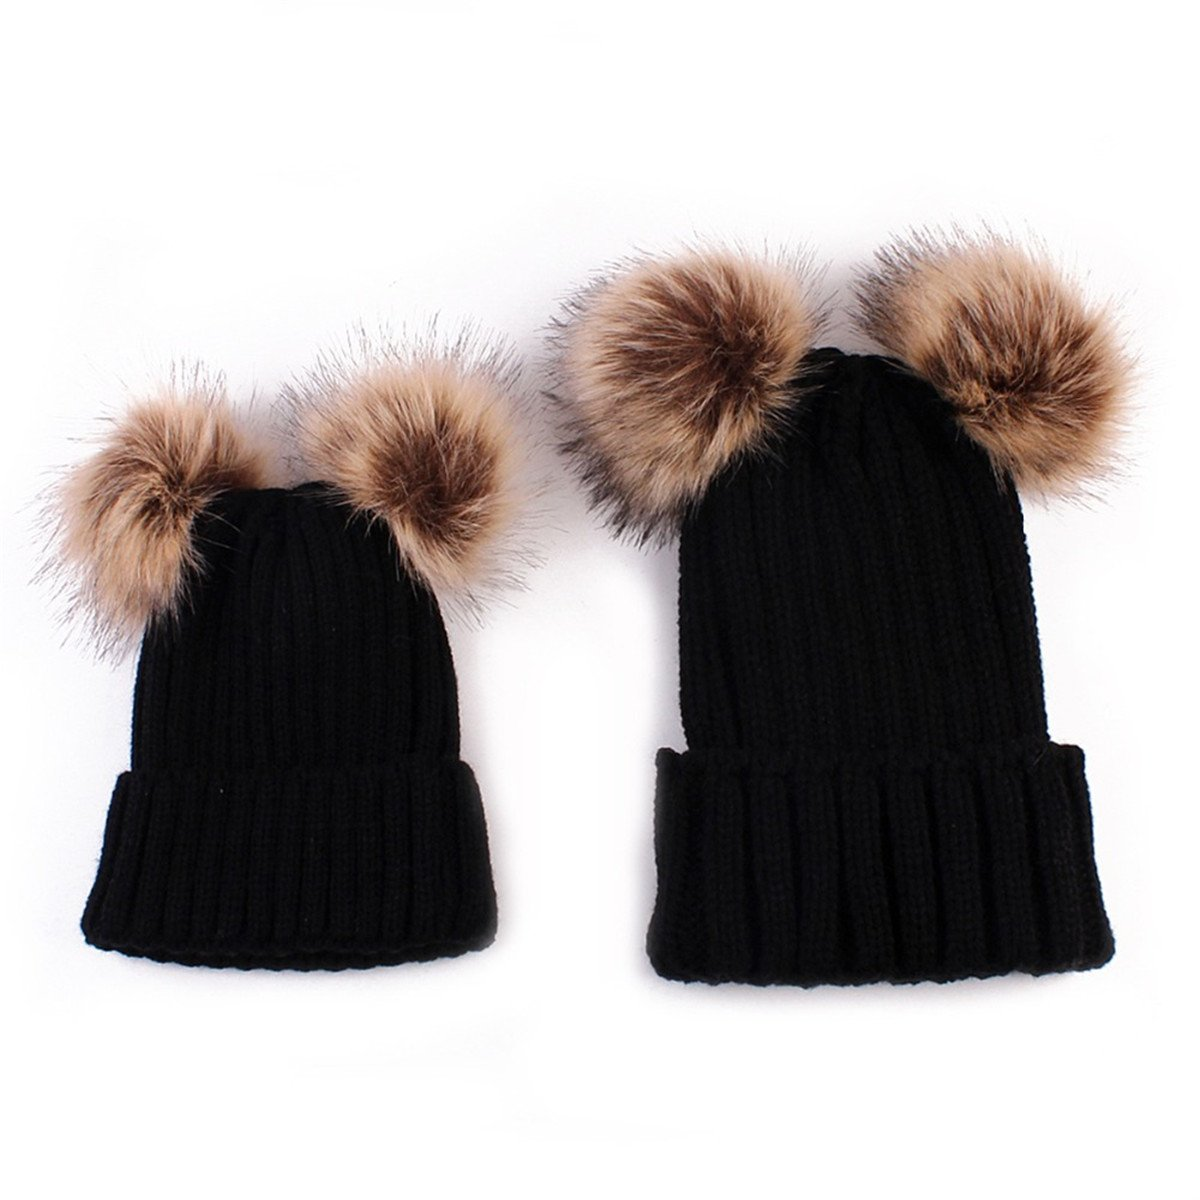 Family Matching Hat Winter Warm Cotton Knitting Beanie Double Pompom Hats,Black